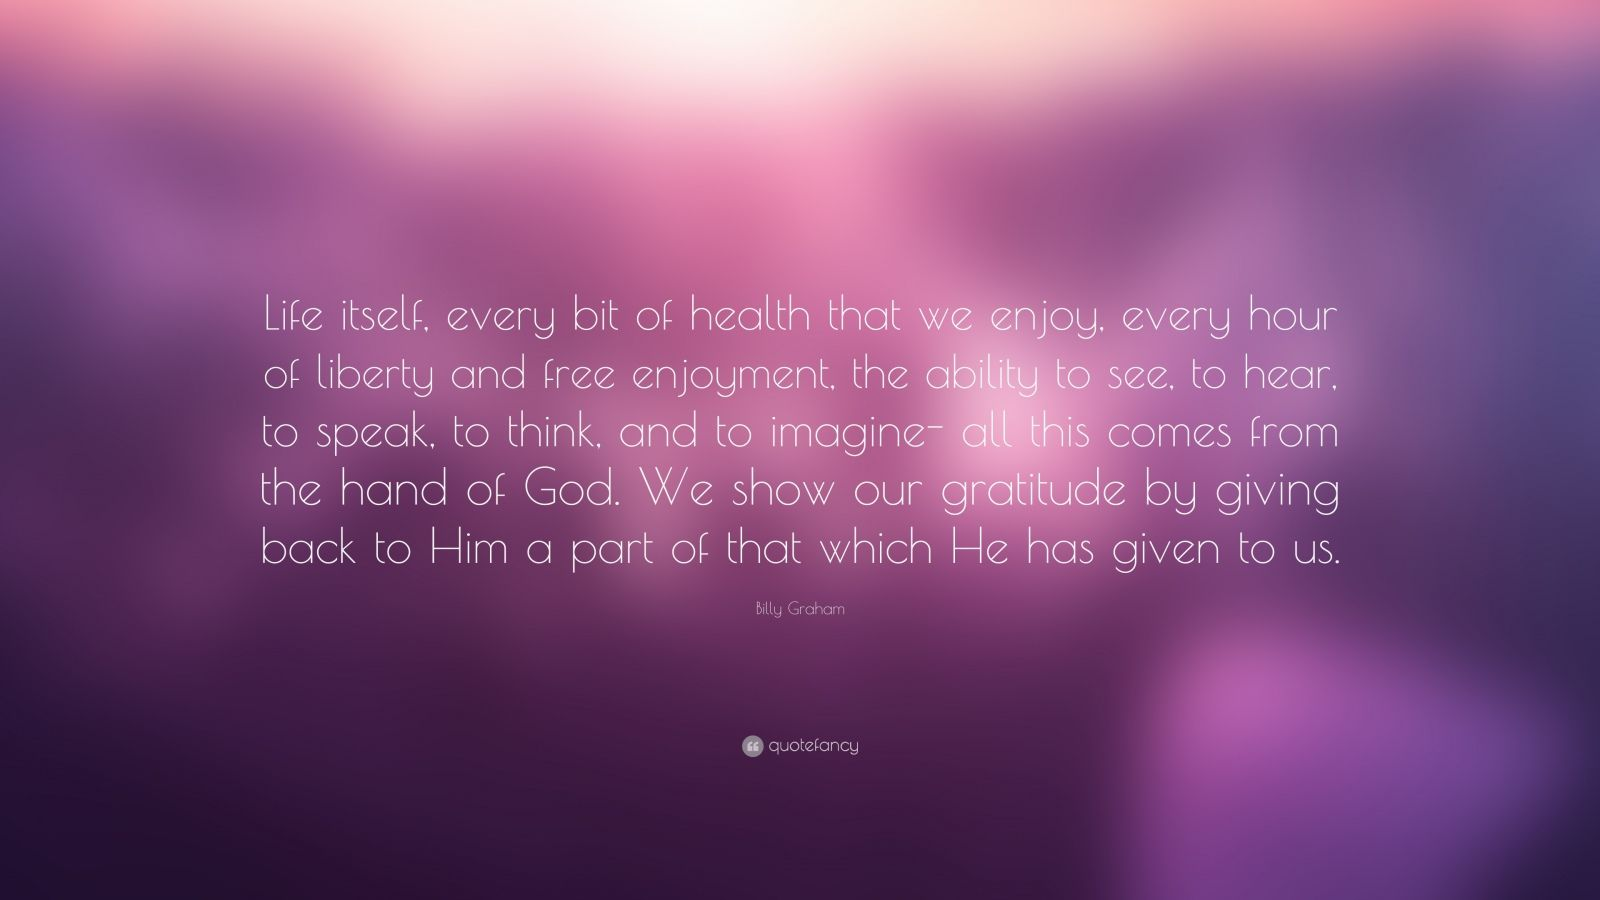 """Billy Graham Quote: """"Life itself, every bit of health that we enjoy, every hour of liberty and free enjoyment, the ability to see, to hear, to speak, to think, and to imagine- all this comes from the hand of God. We show our gratitude by giving back to Him a part of that which He has given to us."""""""